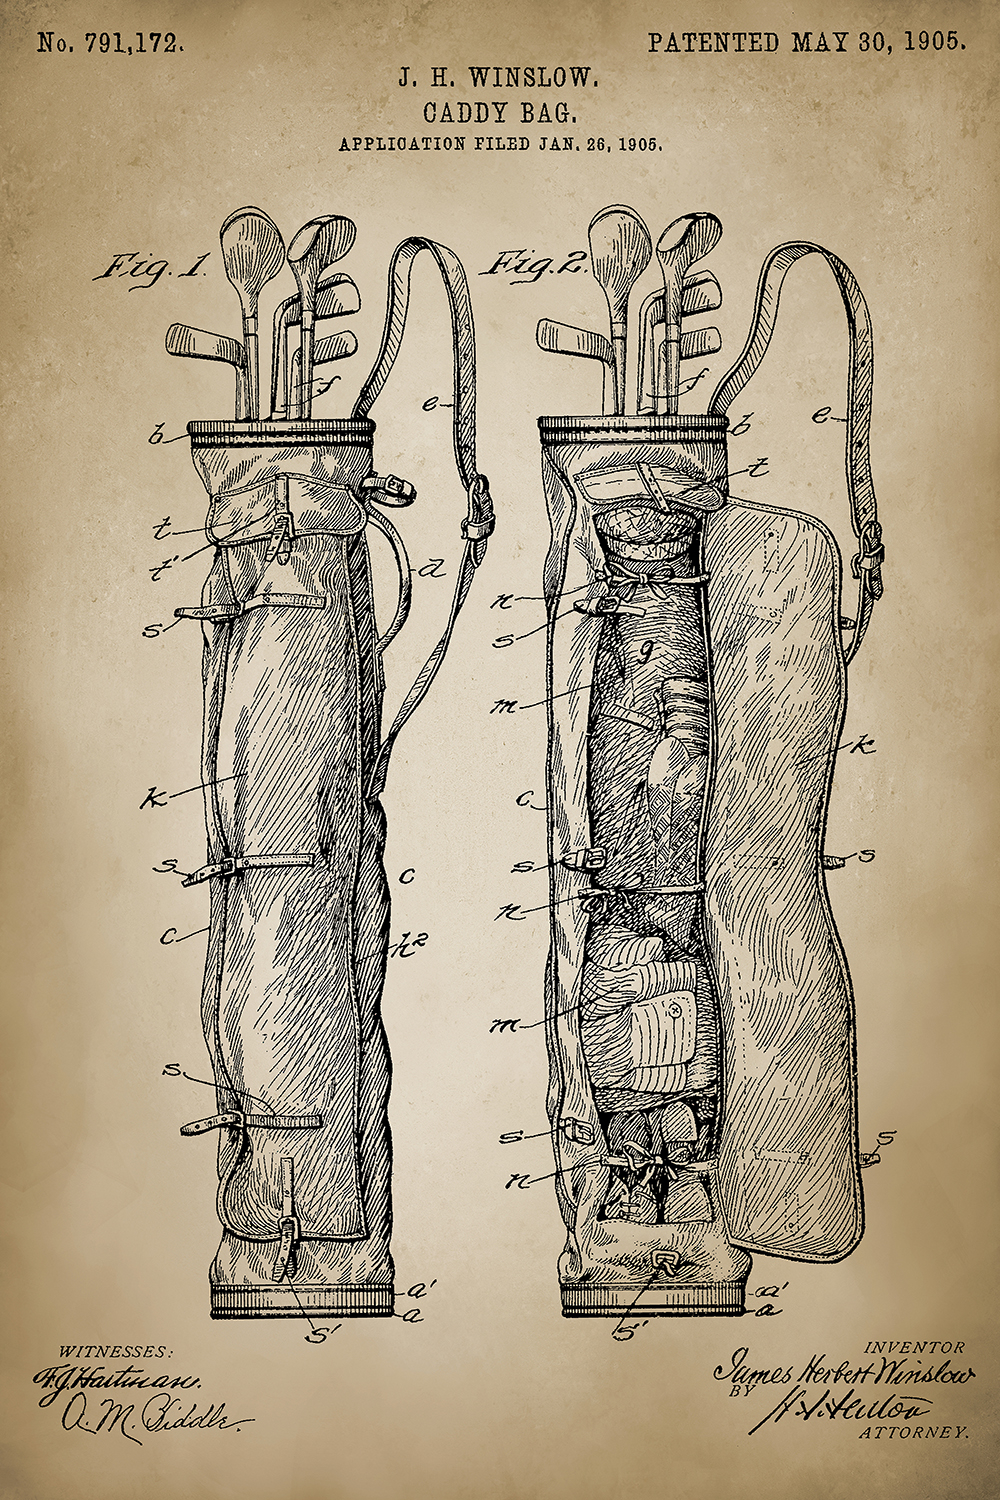 a patent of the golf bag from May 30, 1905